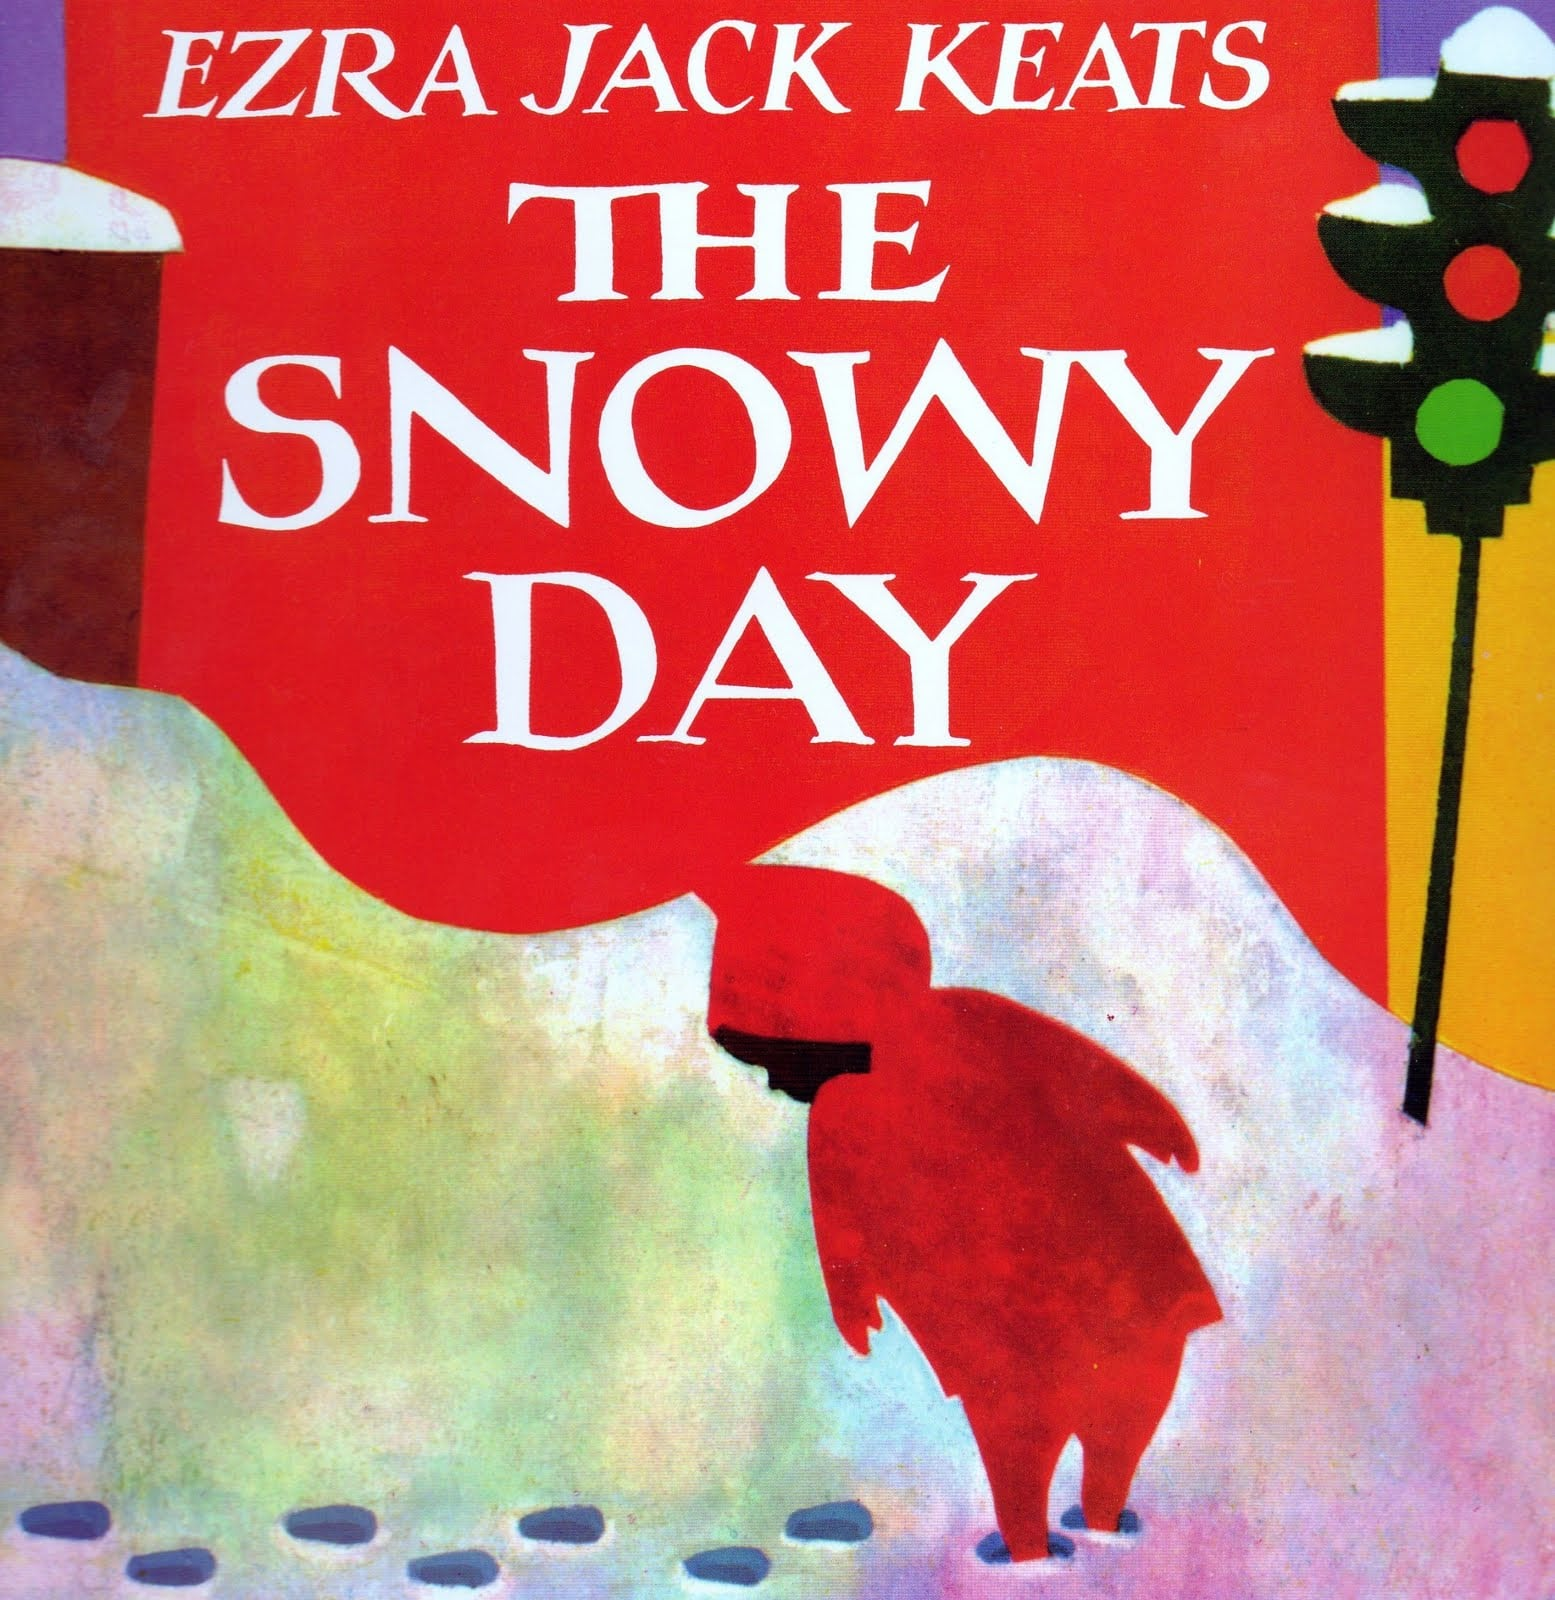 """The Snowy Day and the Art of Ezra Jack Keats"" Exhibit"